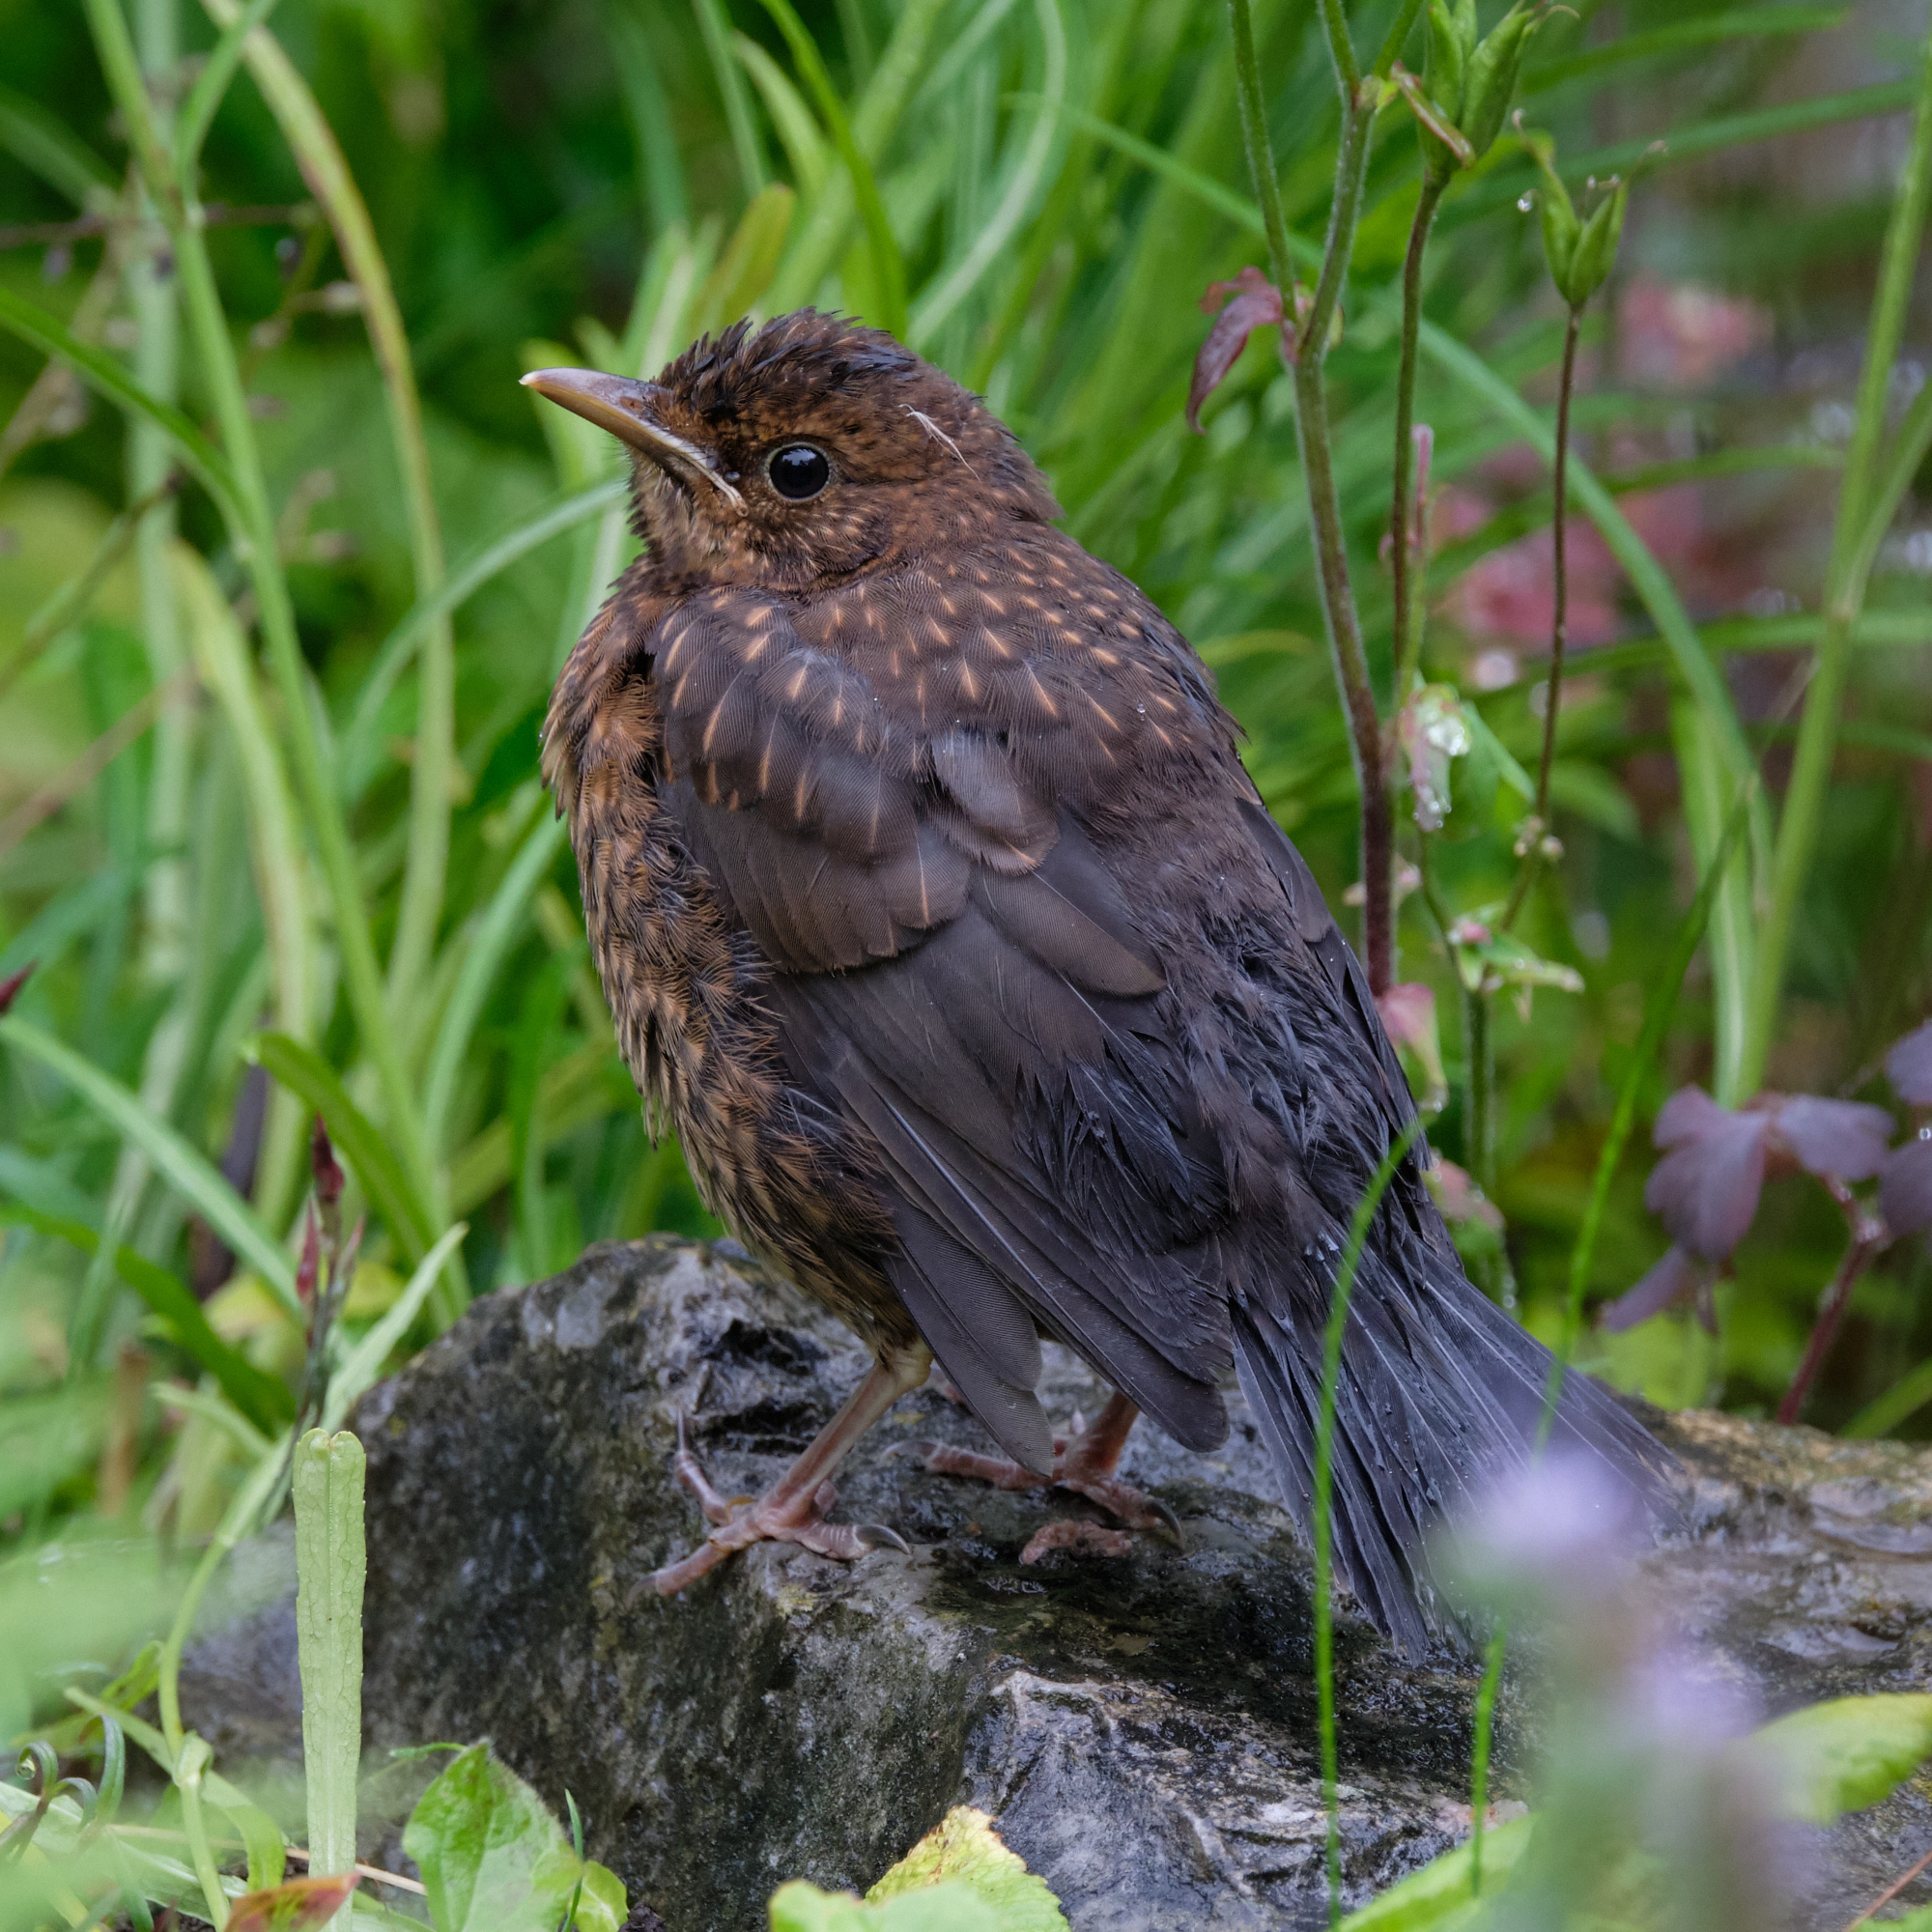 junge Amsel / young blackbird